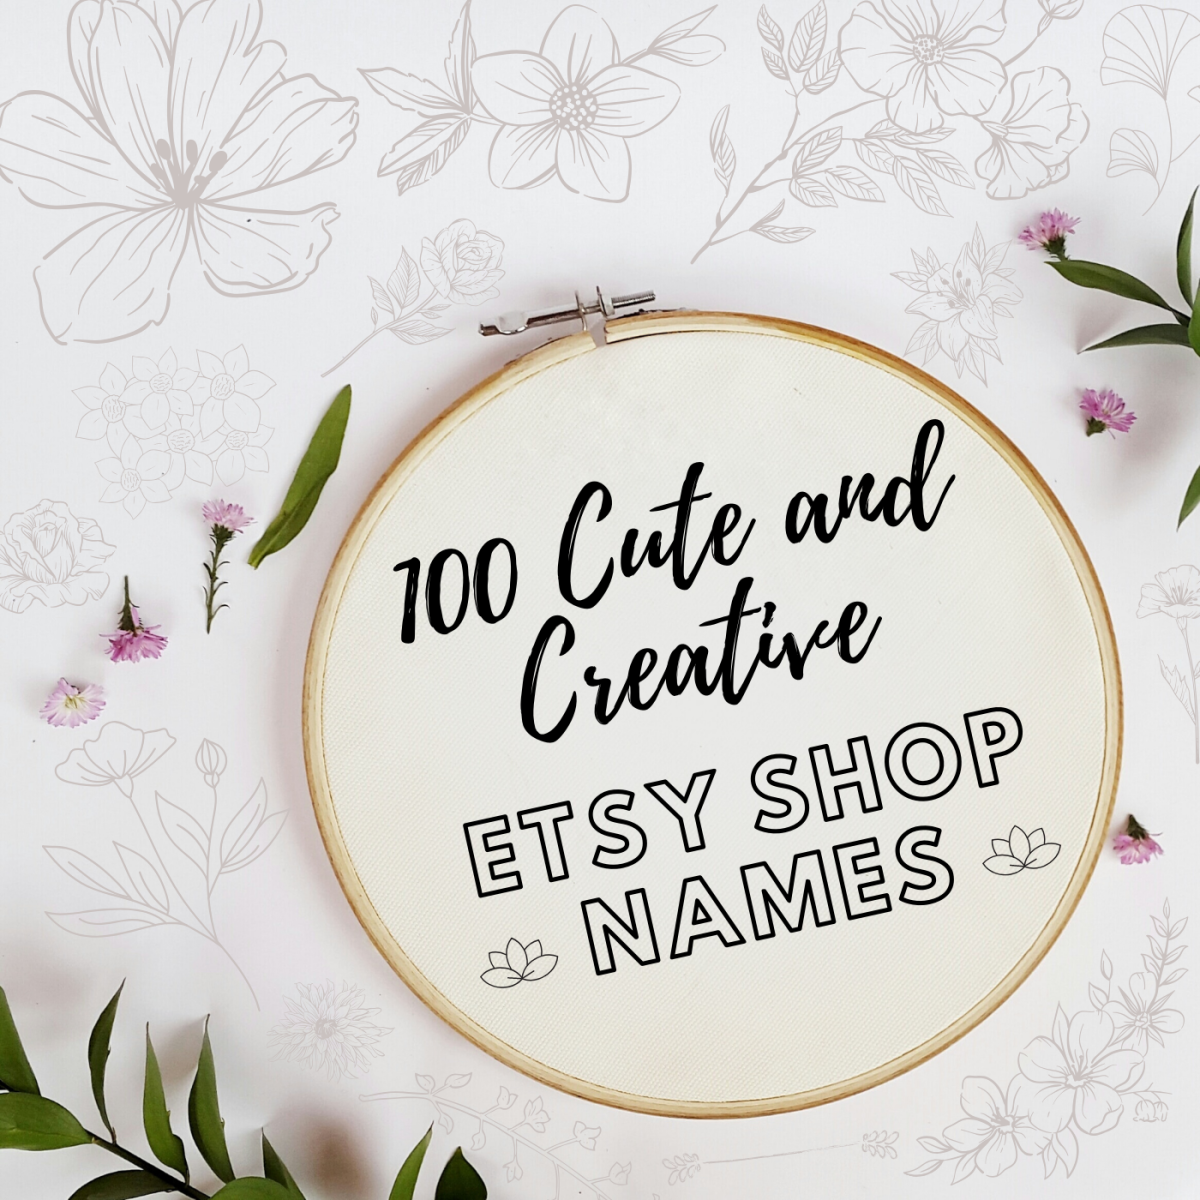 Ready to start your own Etsy shop and sell your crafts online? The first thing you'll need is a cute, catchy, and memorable name.